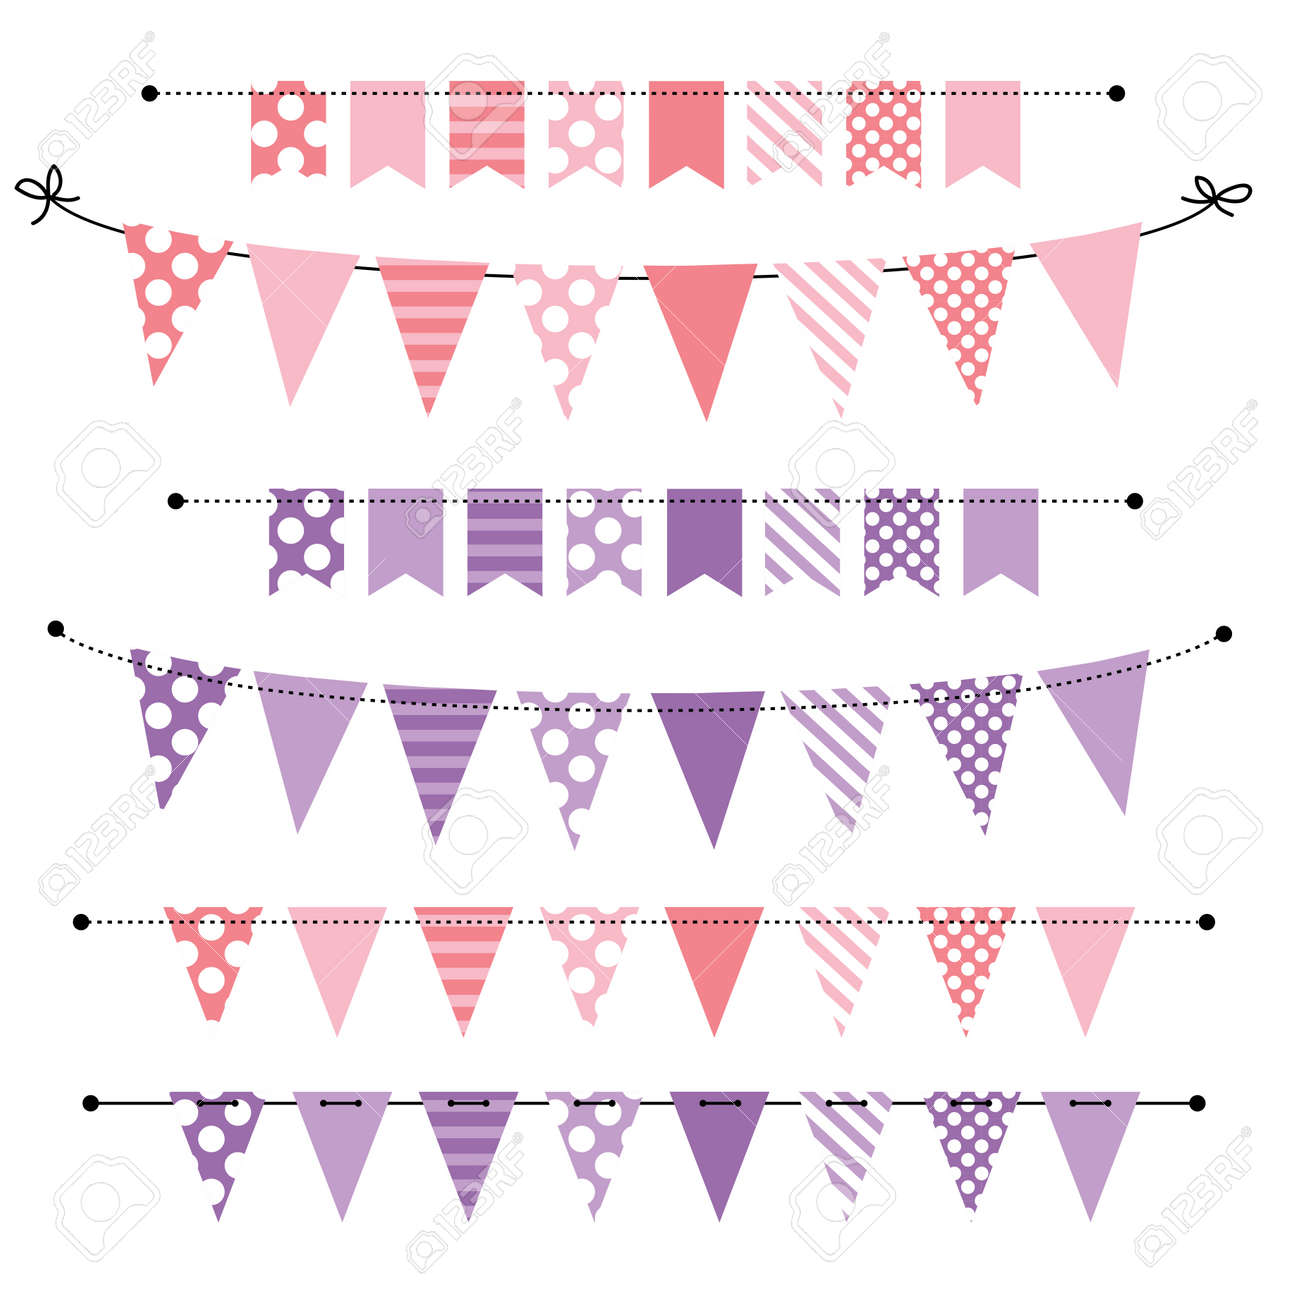 Pink And Purple Blank Banner Bunting Or Swag Templates For Scrapbooking Royalty Free Cliparts Vectors And Stock Illustration Image 27747479